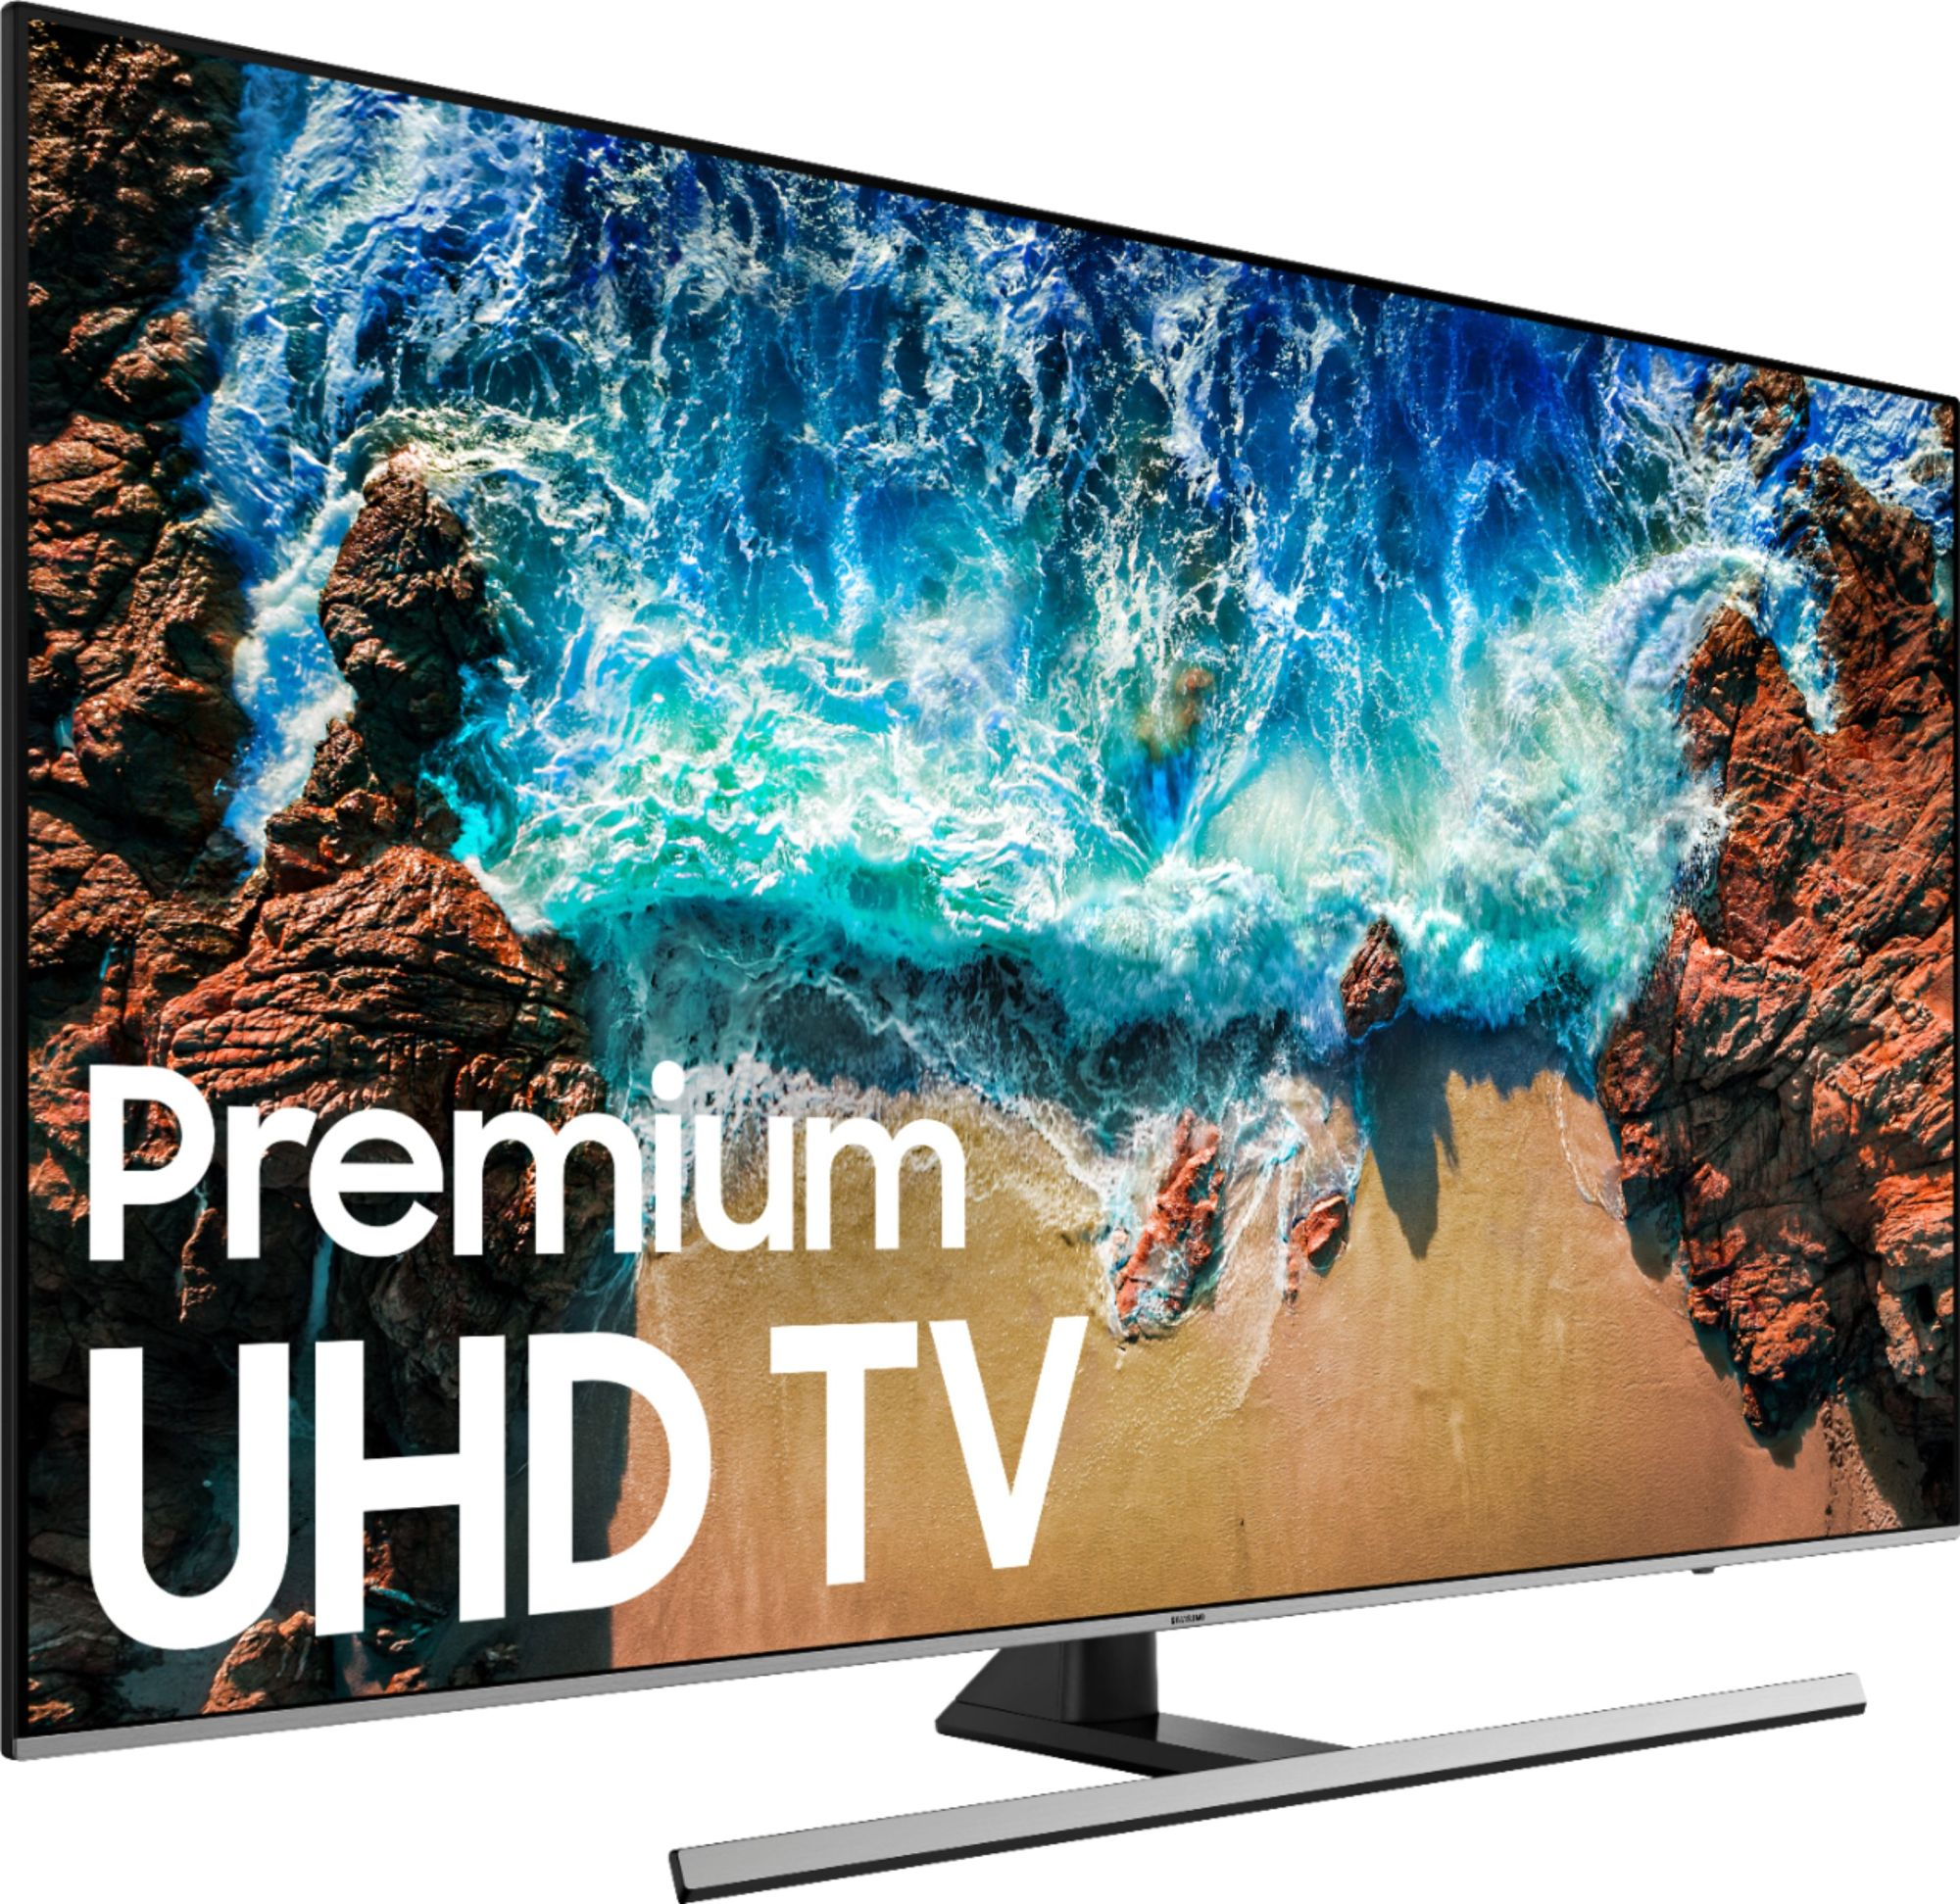 hight resolution of best buy samsung 65 class led nu8000 series 2160p smart 4k uhd tv with hdr un65nu8000fxza